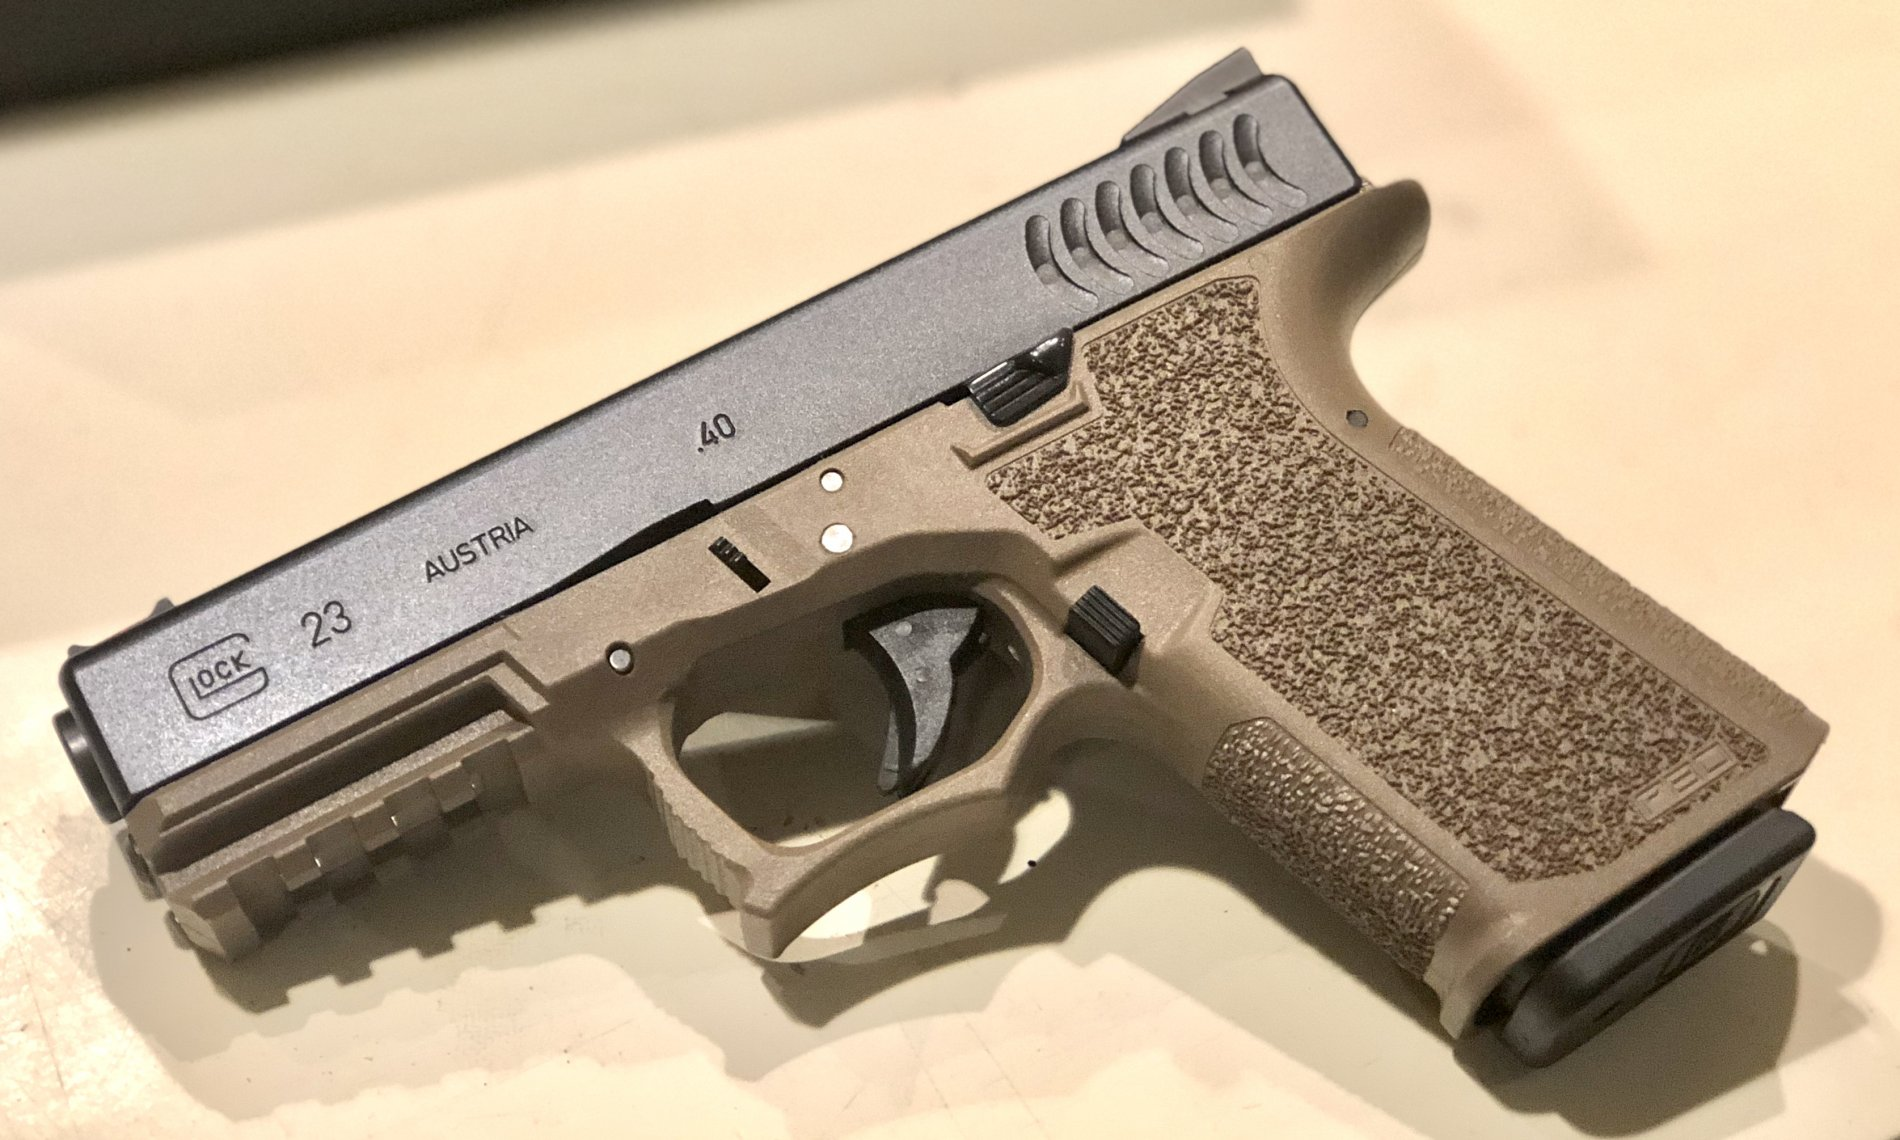 Cheapest Polymer80 build?